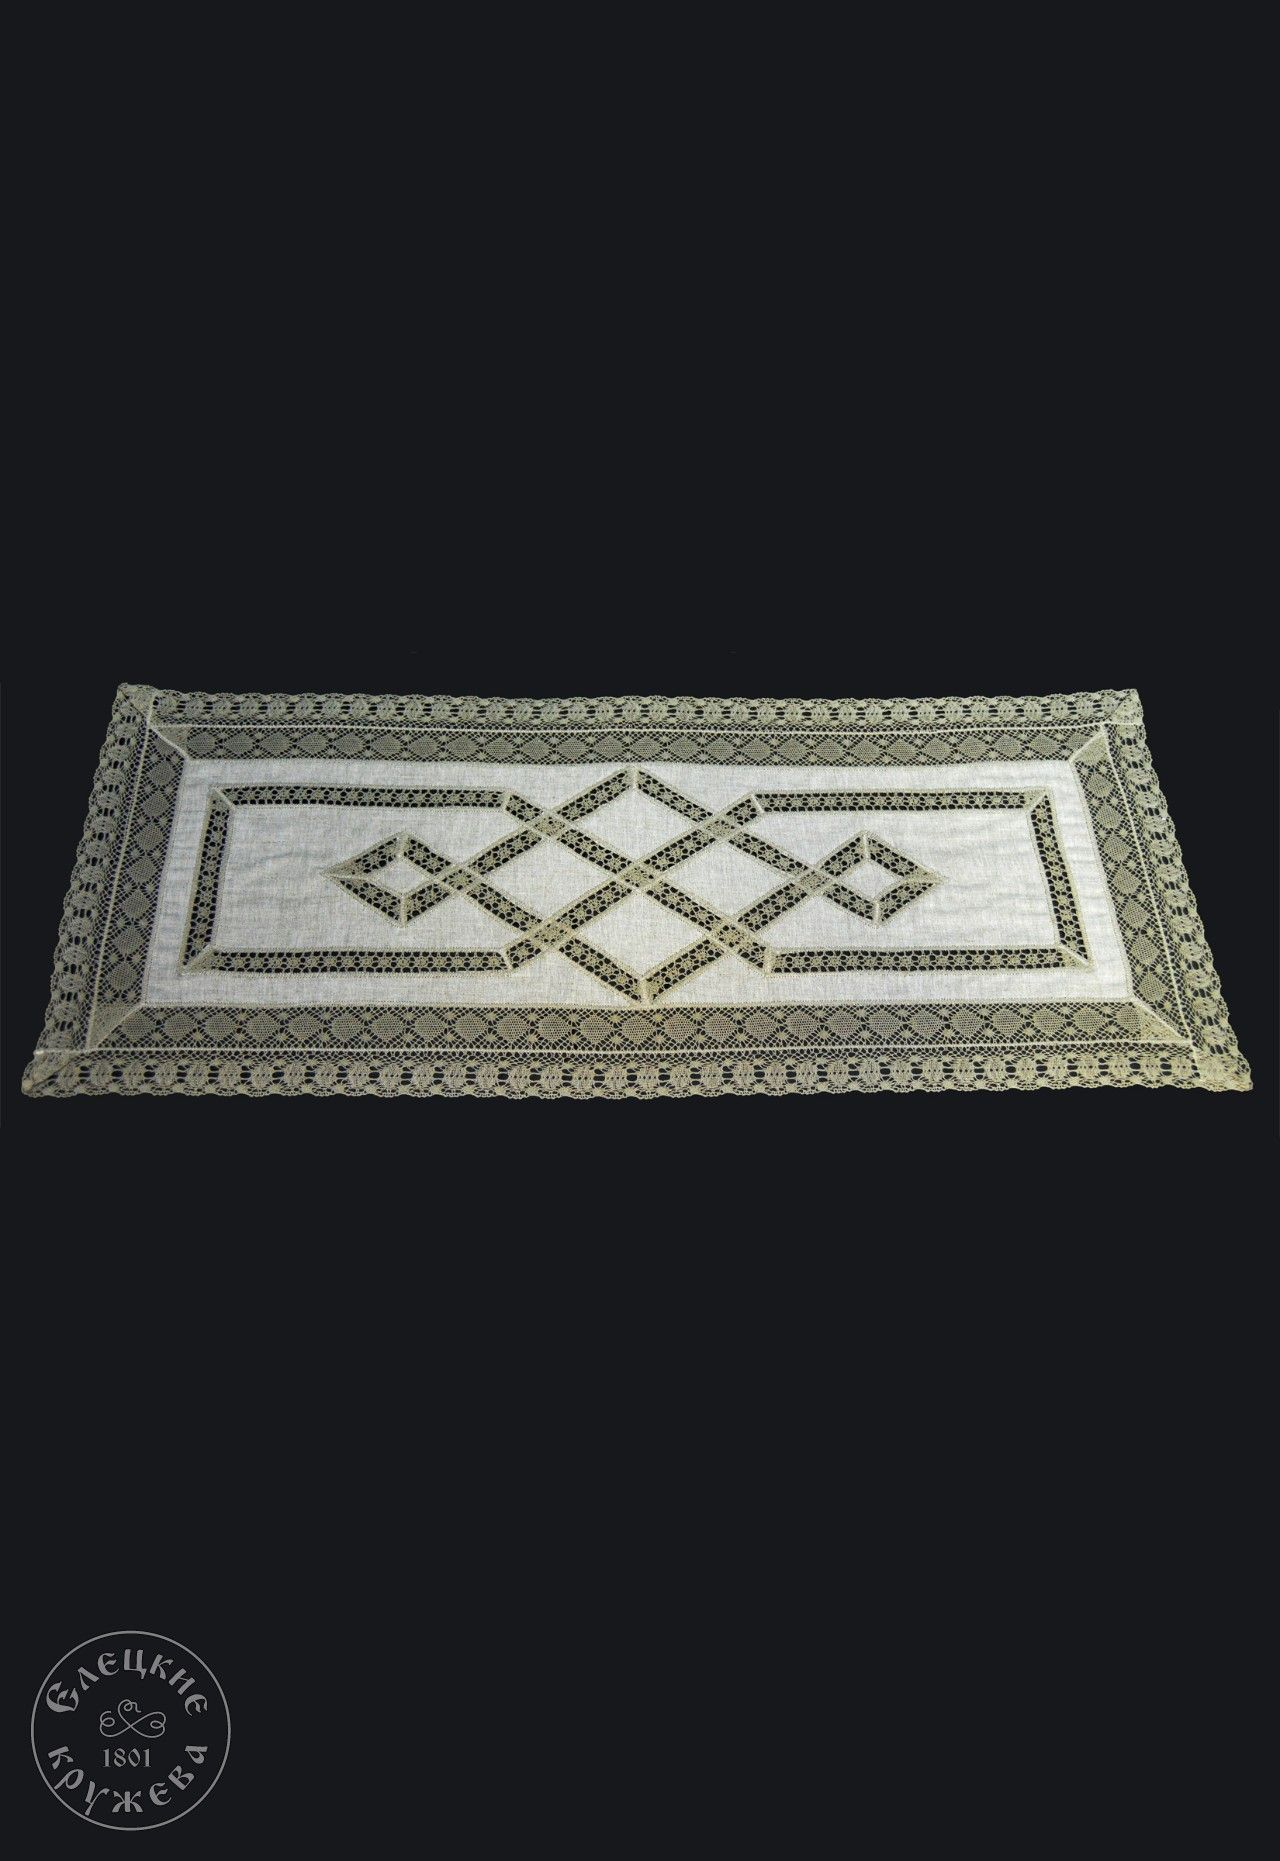 Elets lace / Lace table track